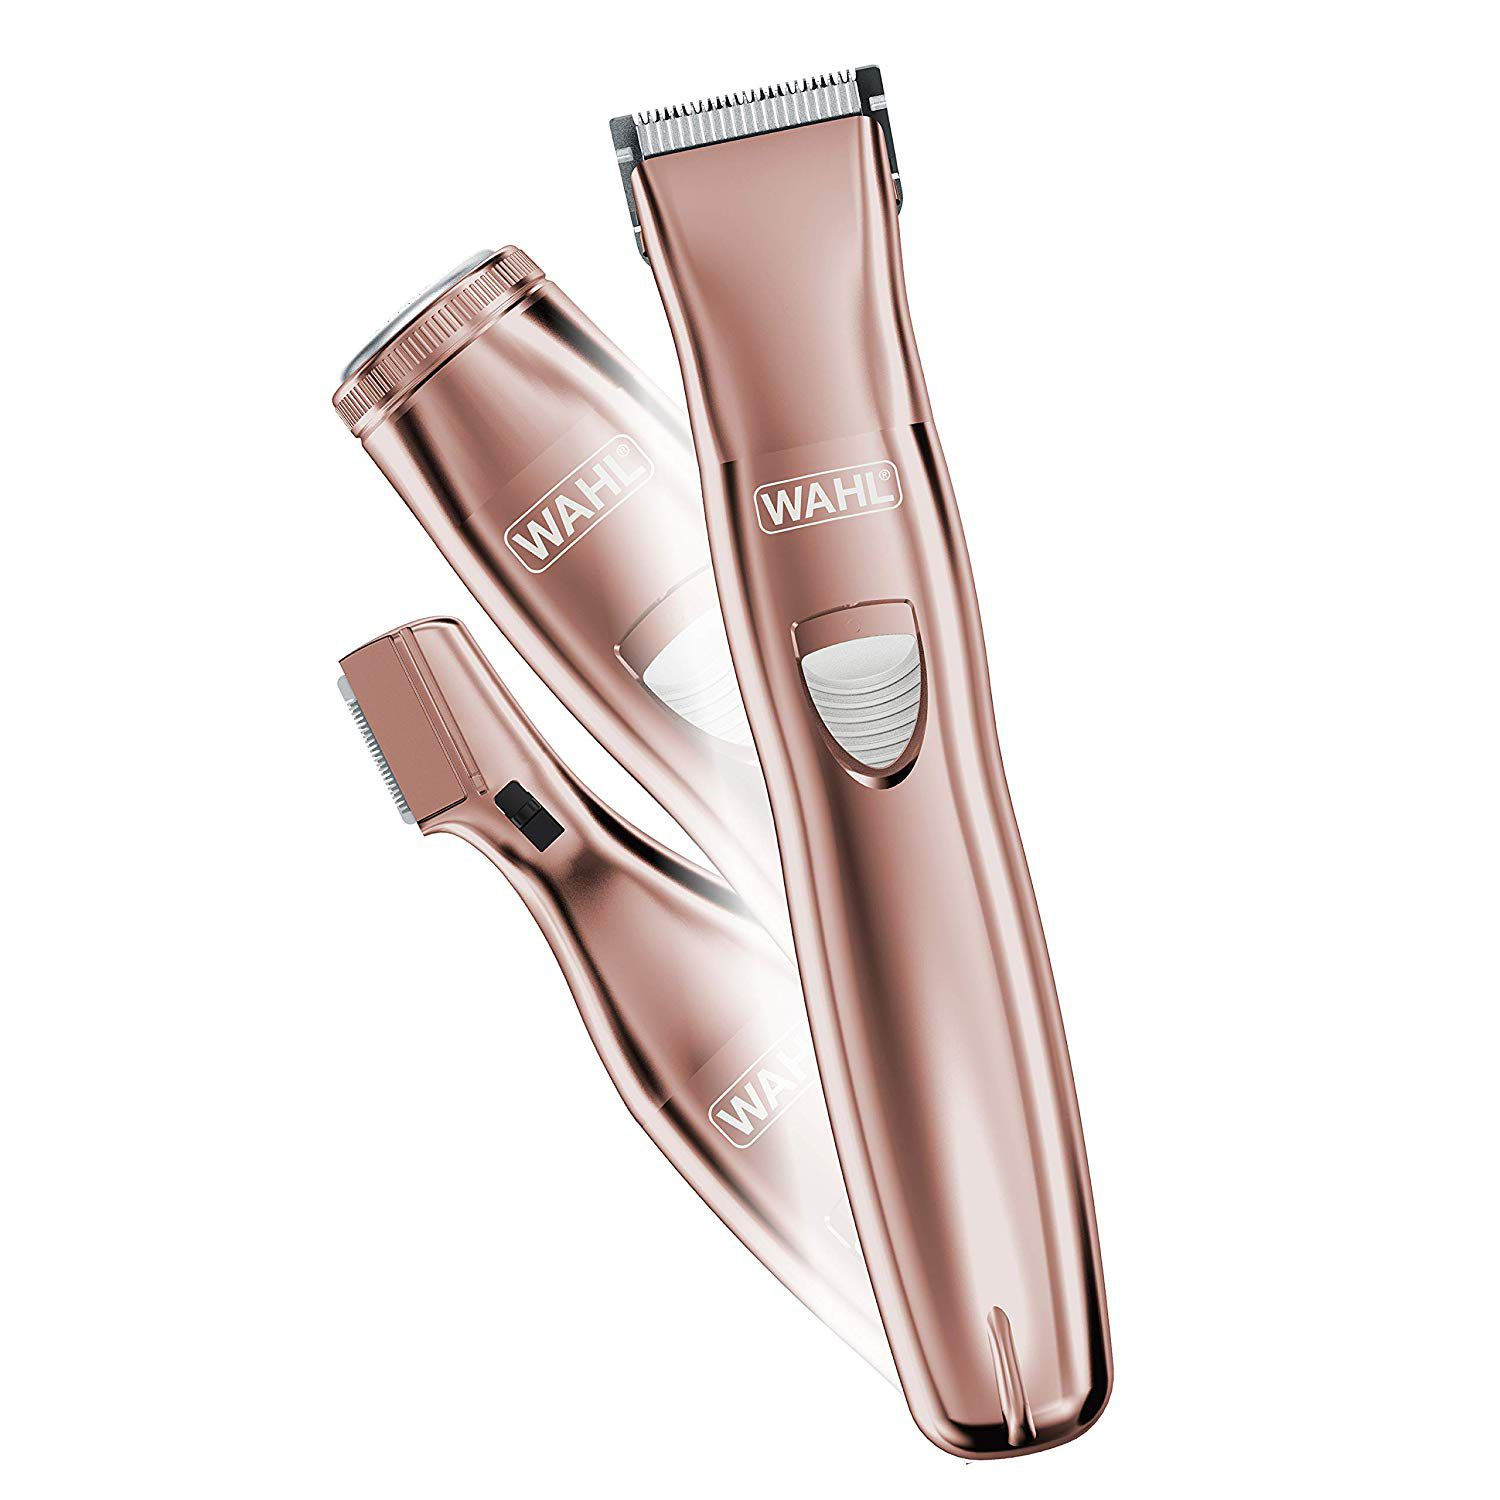 Wahl electric trimmer